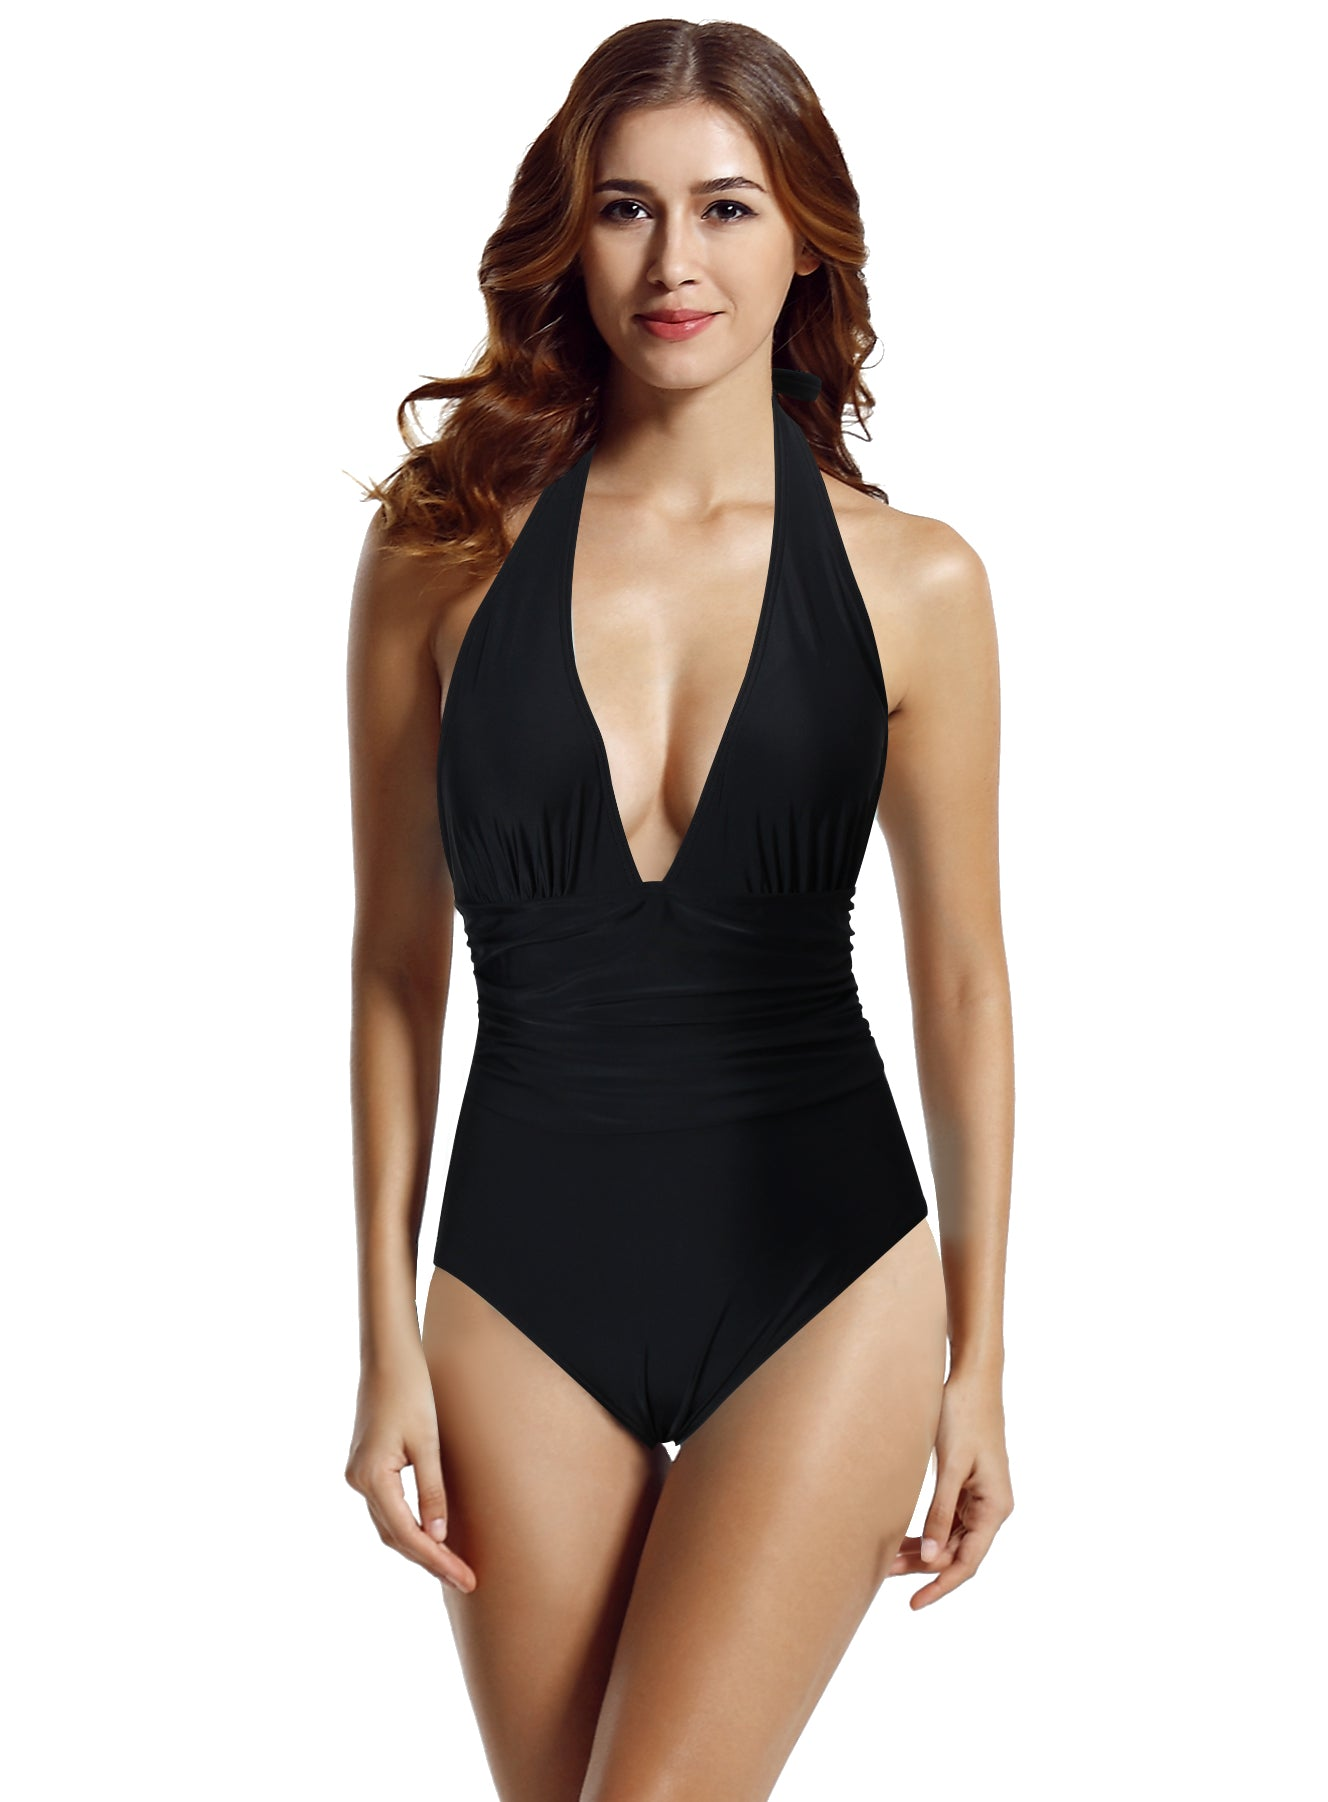 891f9d1195adb zeraca Women's Shirred Detail Plunge Deep V Neck Backless One Piece  Swimsuit Bathing Suit - zeraca